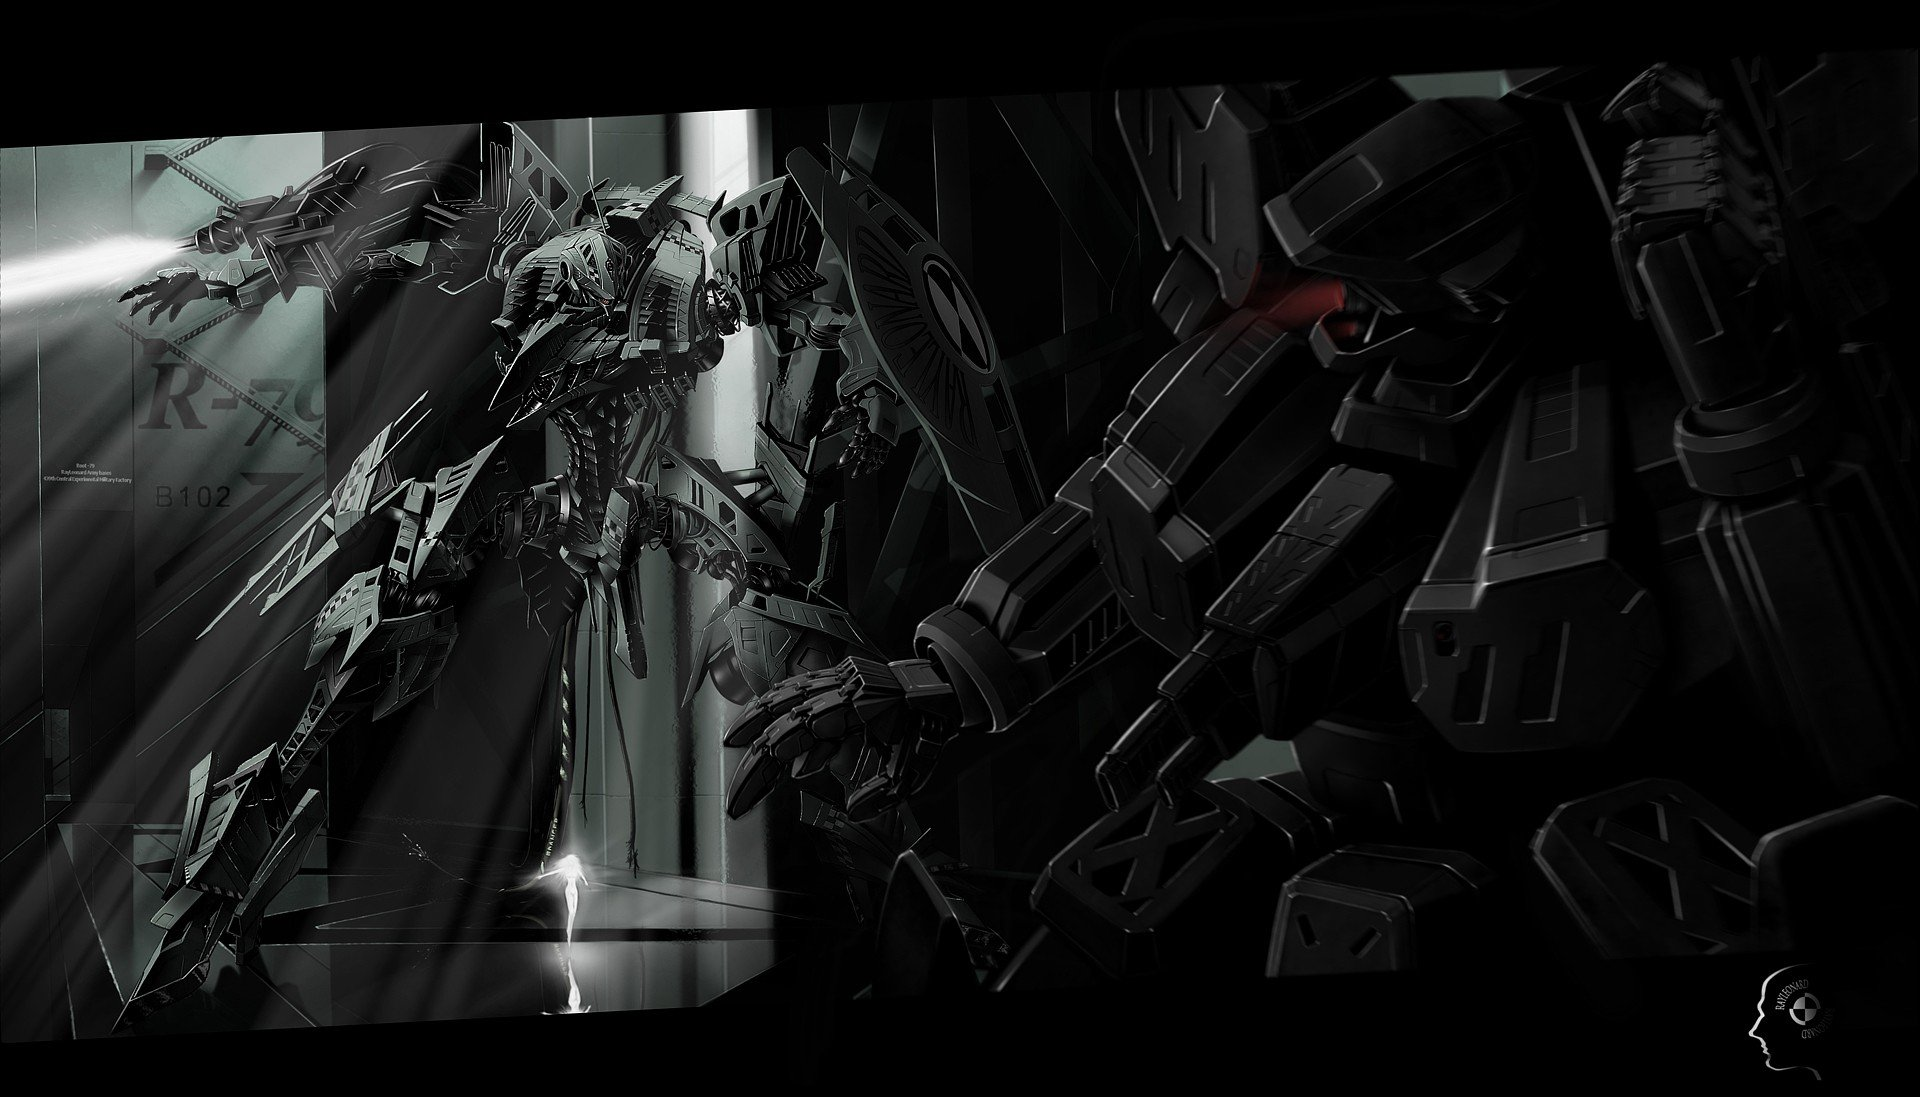 46 anime mecha wallpaper on wallpapersafari - Dark anime background ...